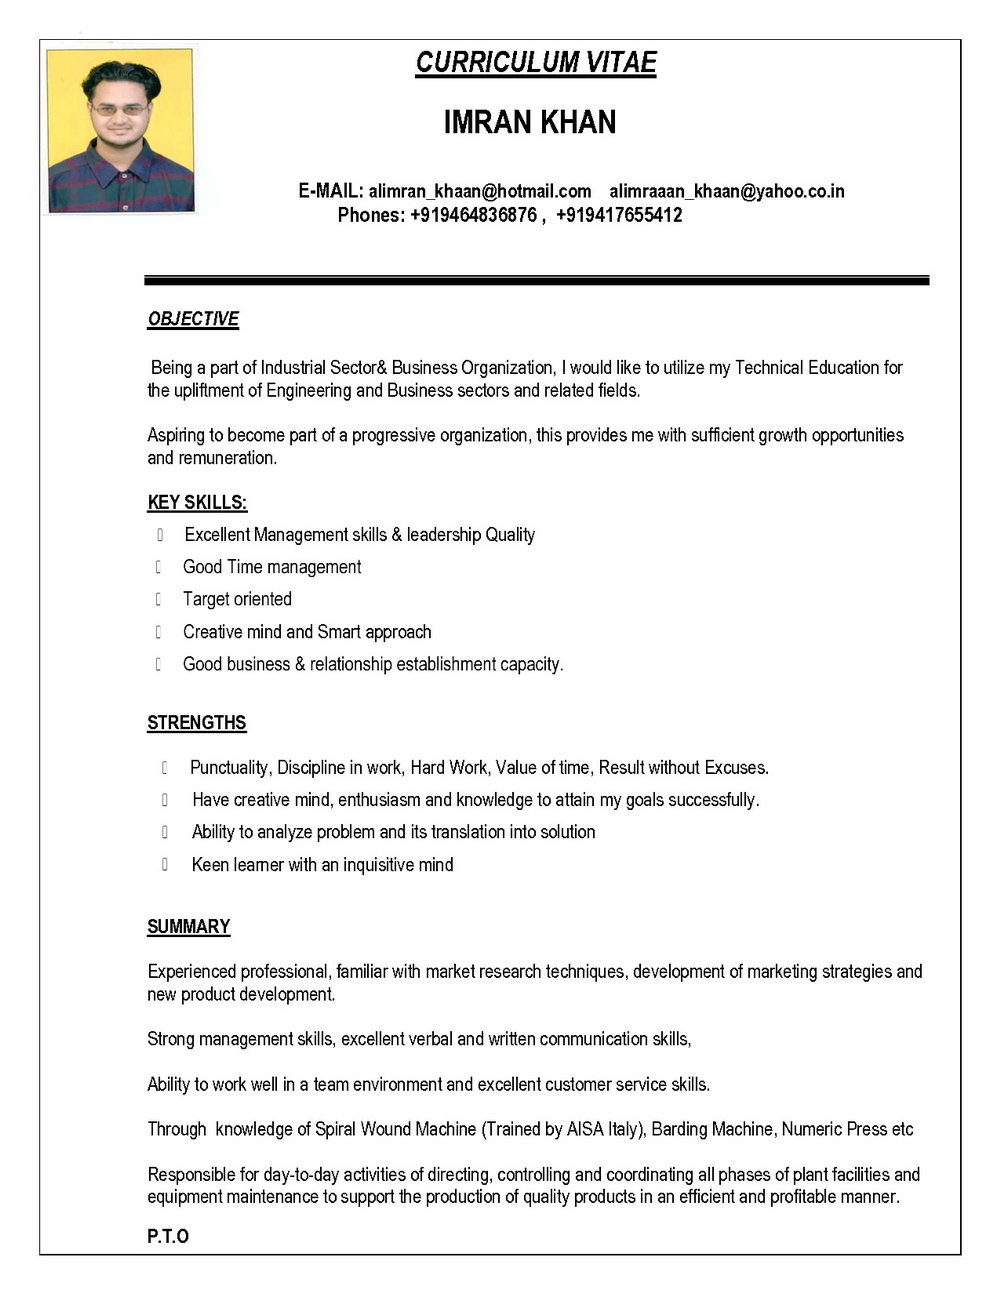 Indian Resume Format In Word File Free Download